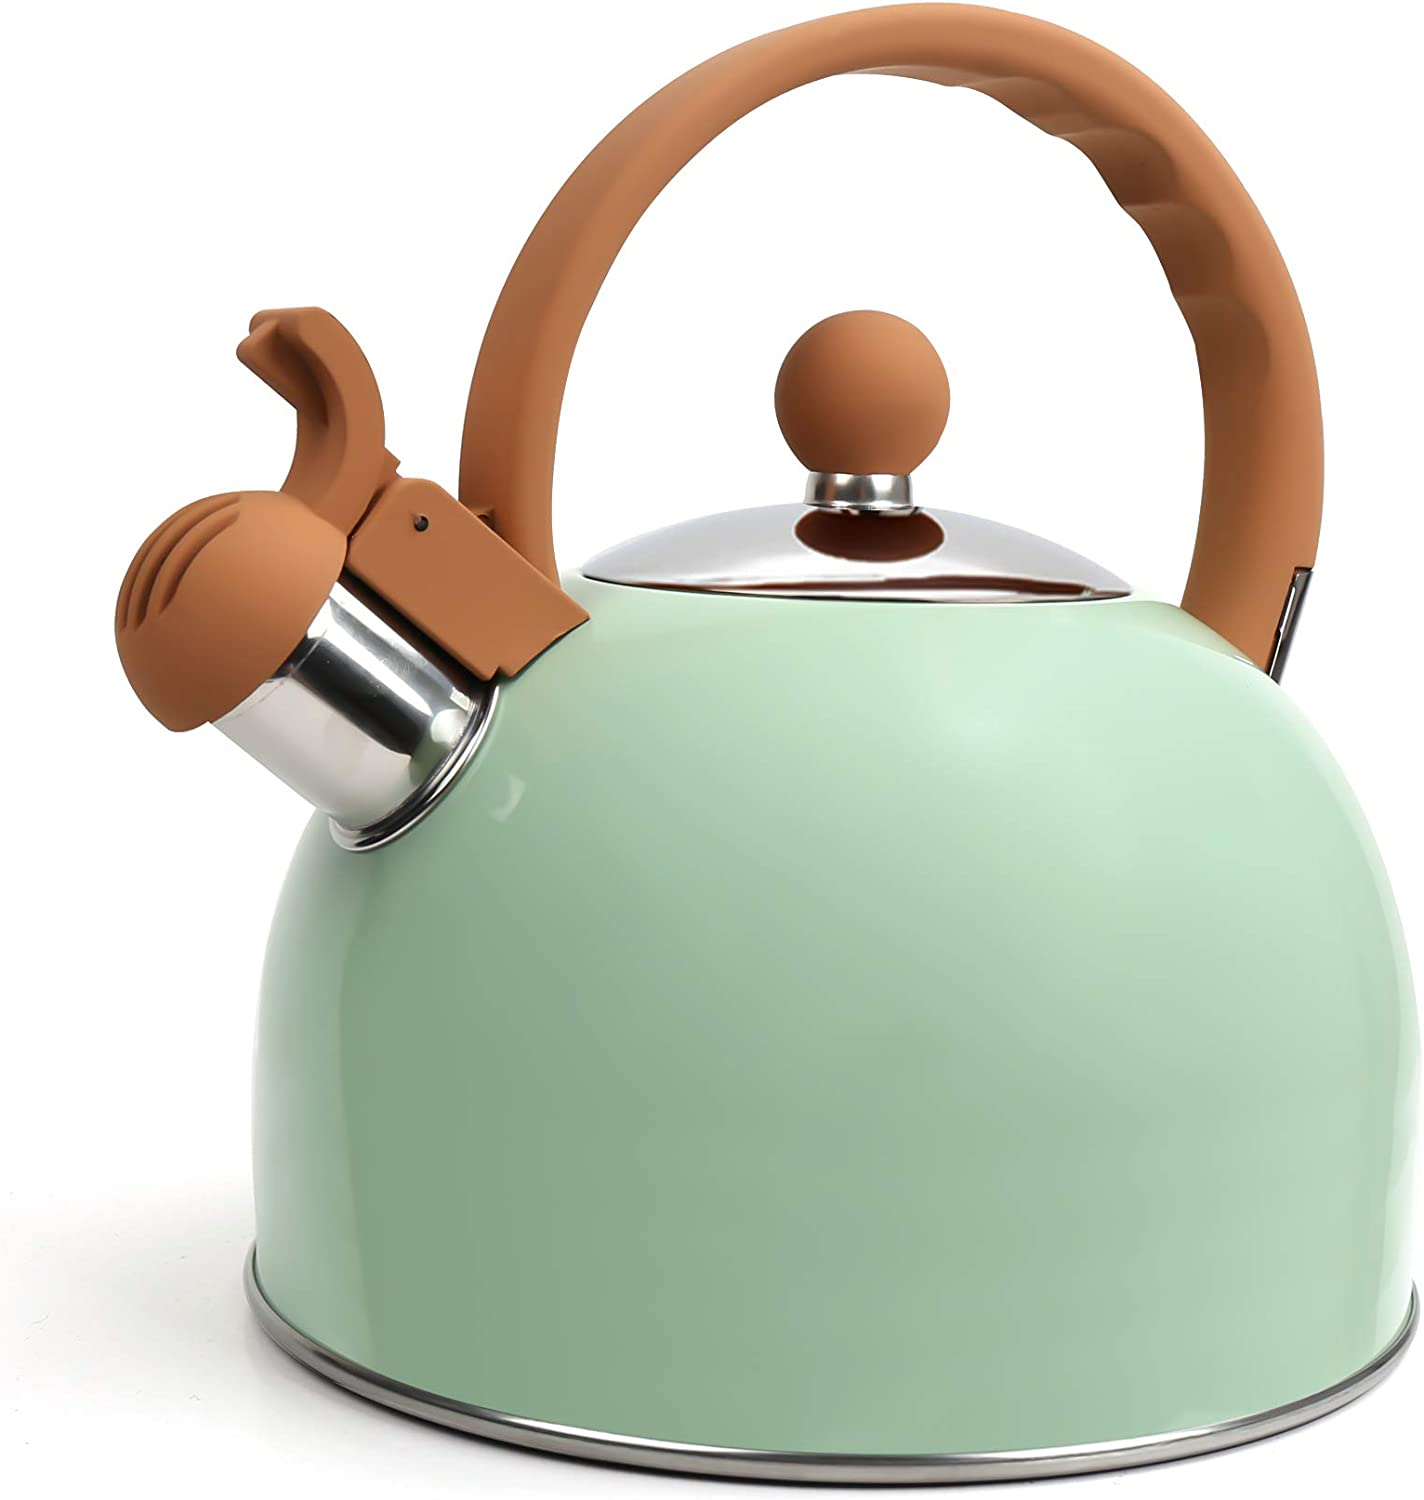 Flantor Tea Kettles Stainless All stores are sold Steel OFFicial site Quart 2.5 Teapot Whistling